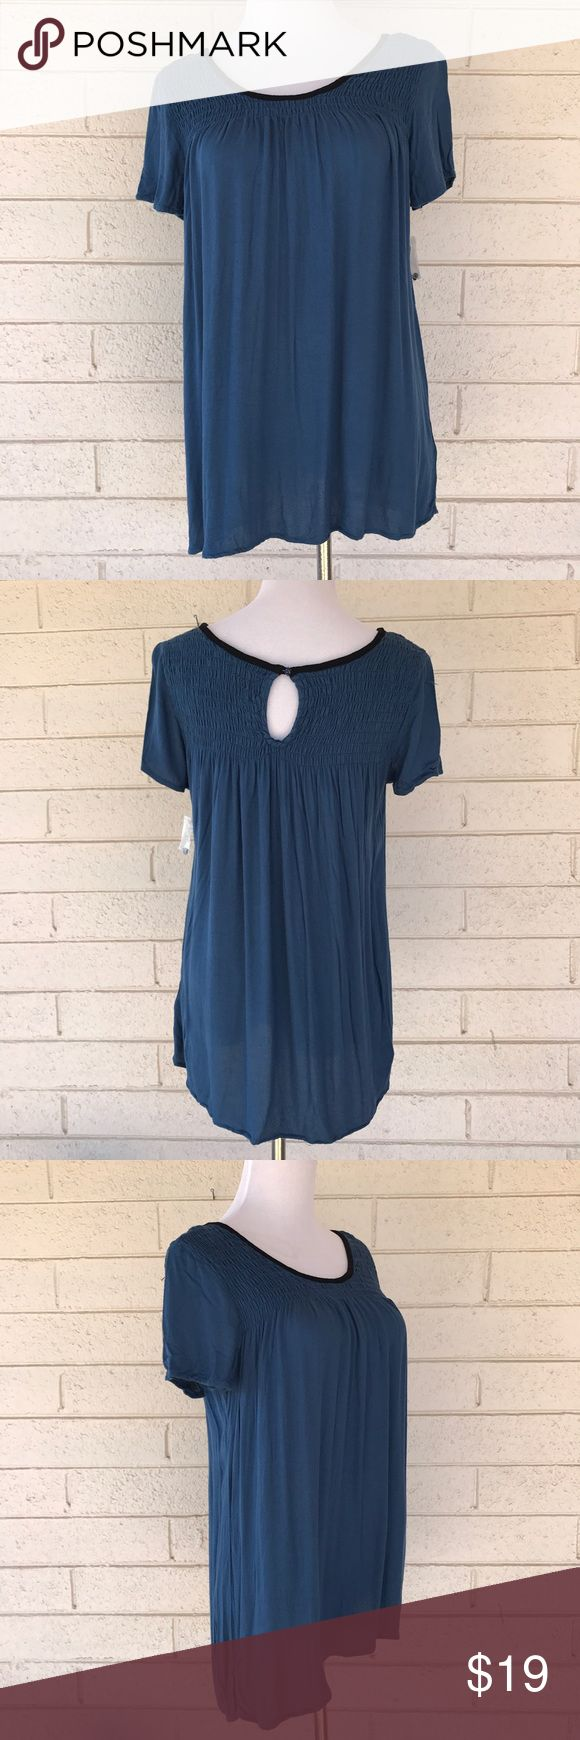 NWOT Ella Moss Smocked Billowy Blue Tunic Tee Navy blue short sleeved tunic top by Ella Moss. Smocked bodice and keyhole back - from fitted on the top to billowy and breezy at the bottom. New without tags (though the extra button is still attached in a baggie). Ella Moss Tops Blouses